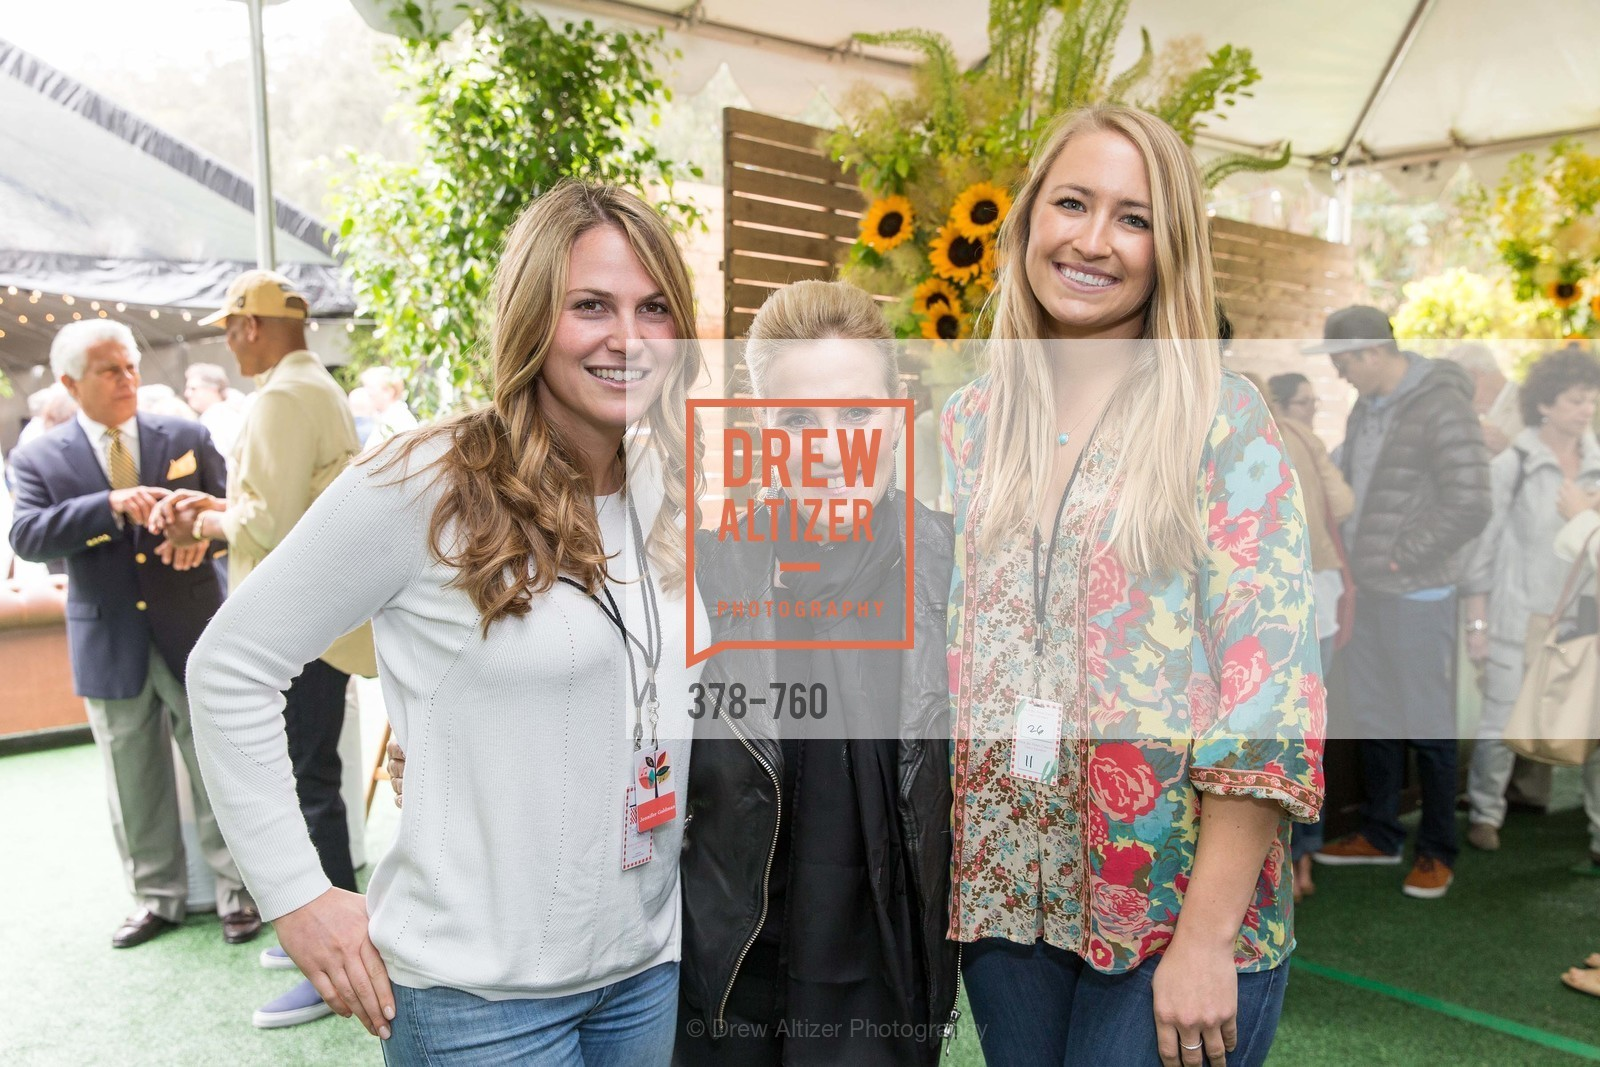 Jennifer Goldman, Lisa Goldman, Alli Holt, The Big Picnic! A Benefit & Concert for STERN GROVE FESTIVAL, US, June 14th, 2015,Drew Altizer, Drew Altizer Photography, full-service agency, private events, San Francisco photographer, photographer california